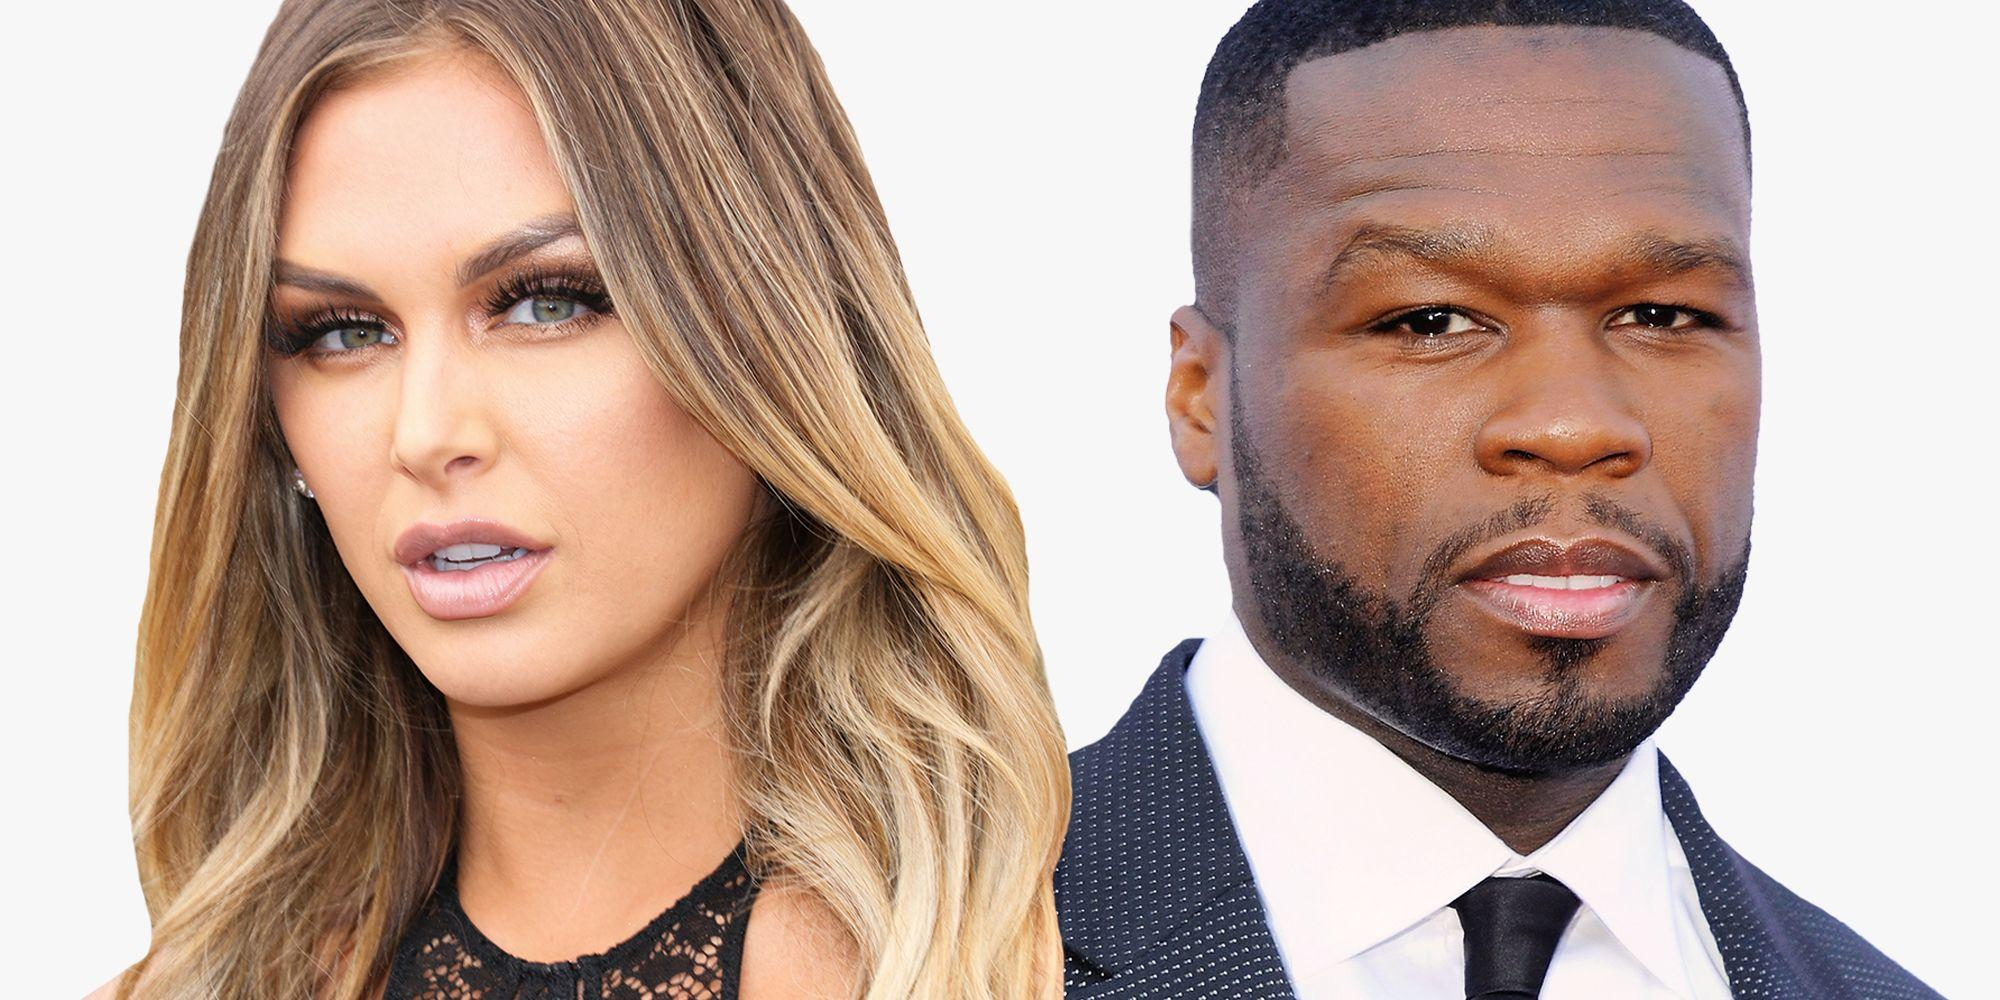 Lala Kent Reignites 50 Cent Beef Because Of This 'Fofty' Coffee Cup!